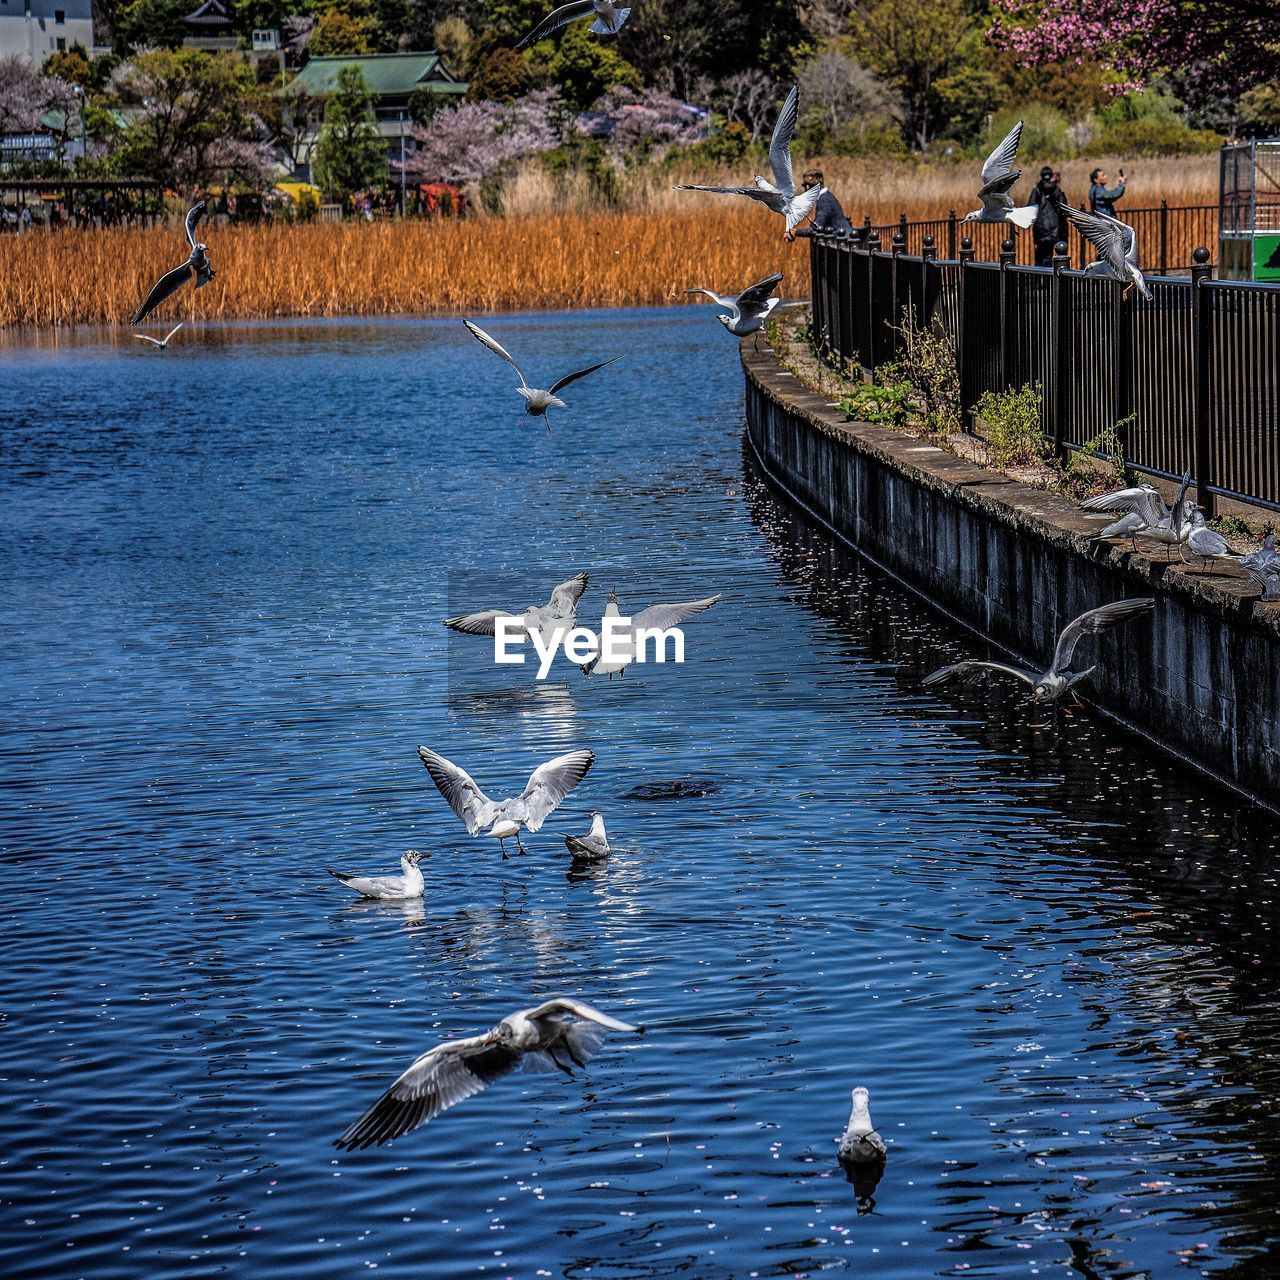 VIEW OF SEAGULLS SWIMMING IN LAKE